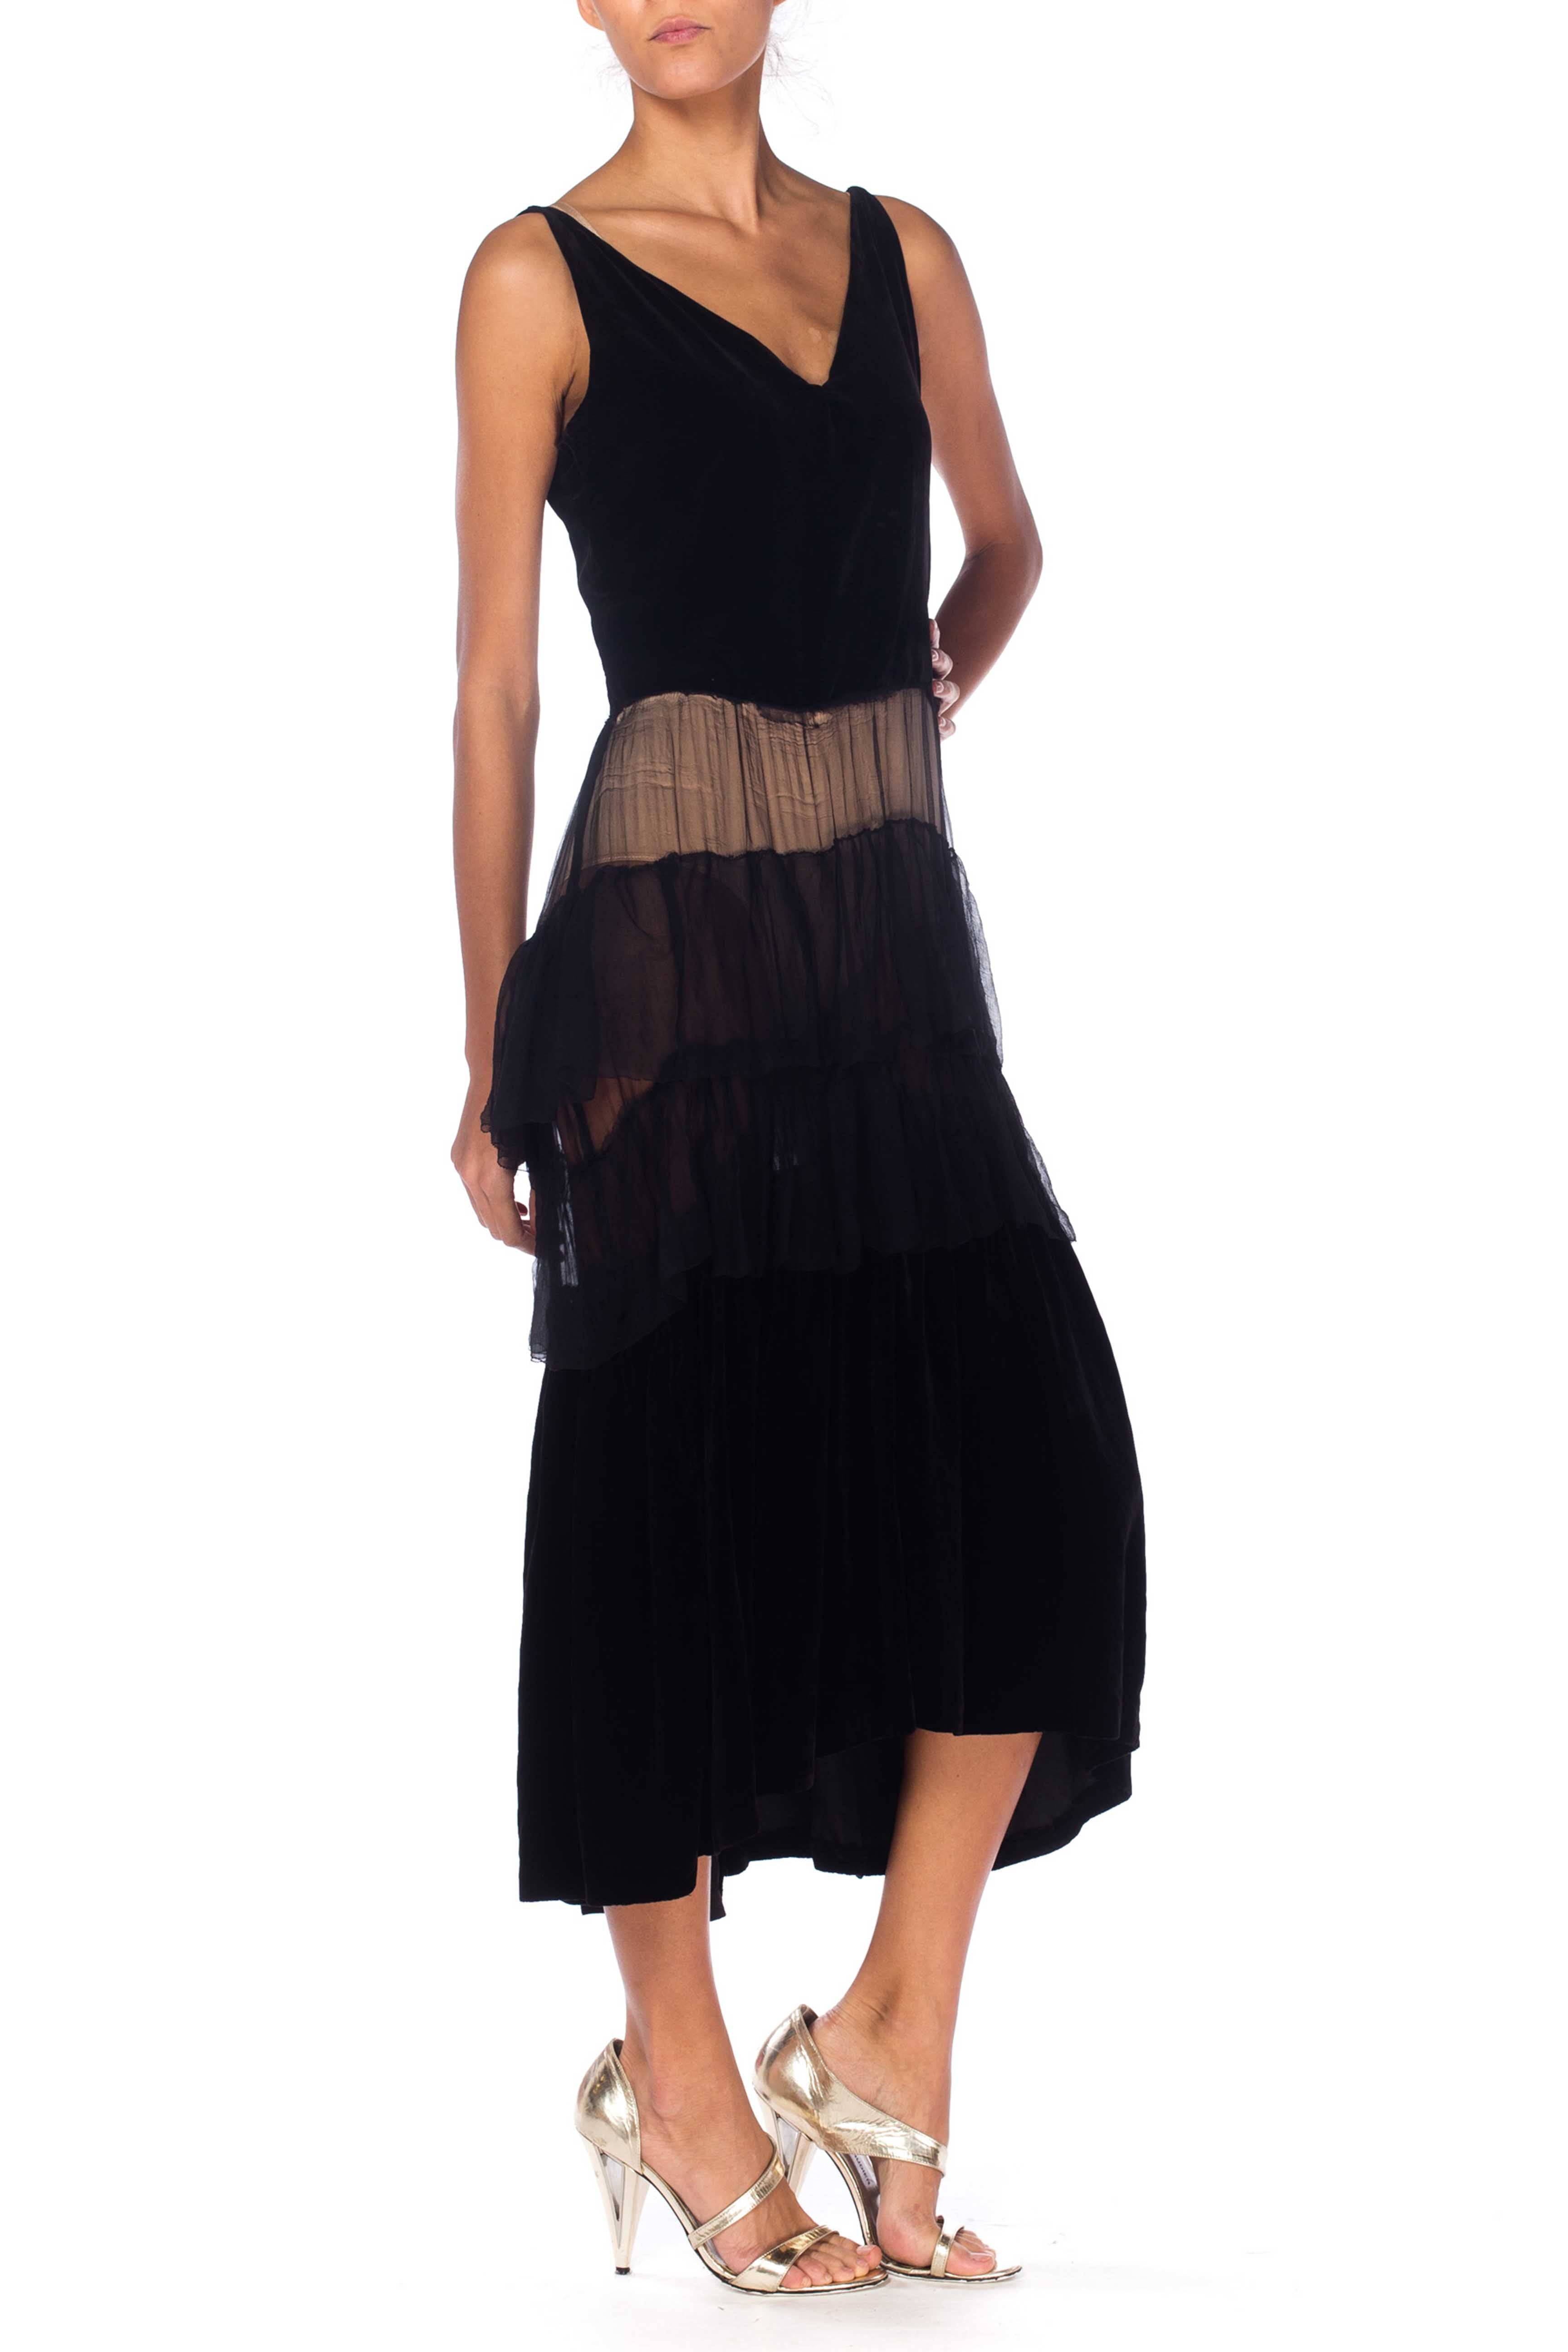 1930S Black Silk Velvet  Spaghetti Strap Cocktail Dress With Chiffon Ruffle Skirt